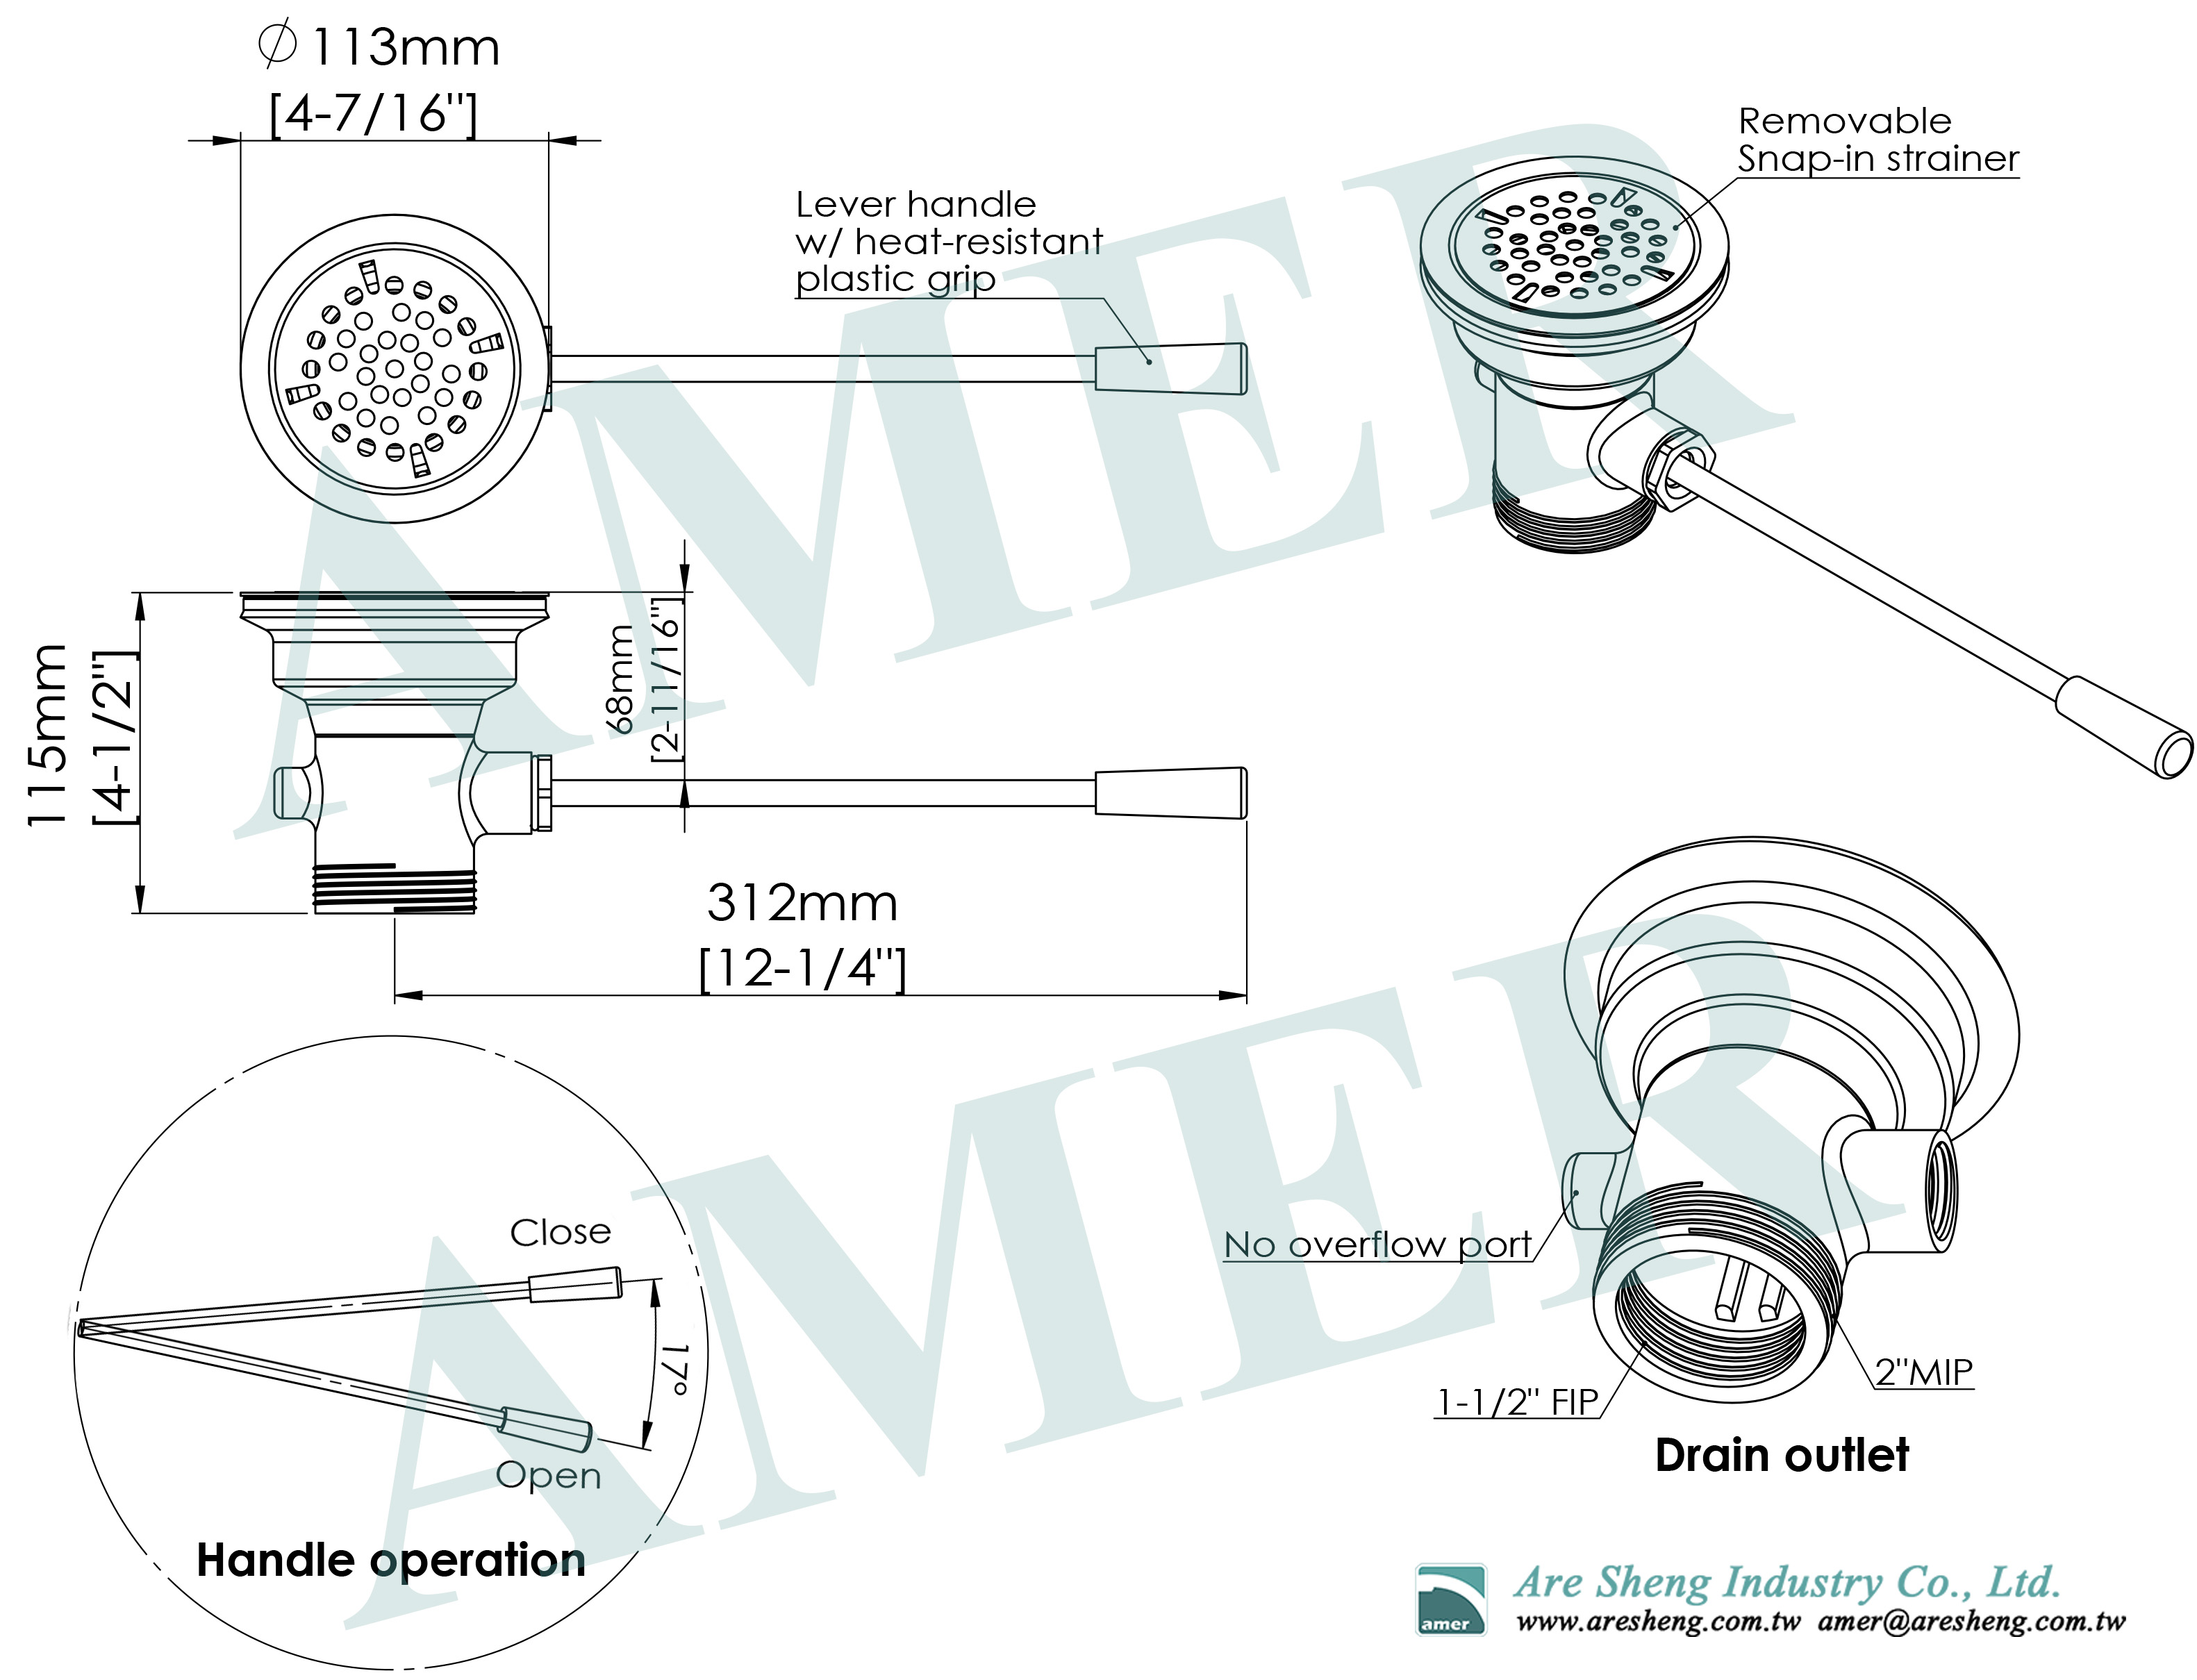 waste valve lever handle drain dimension drawing